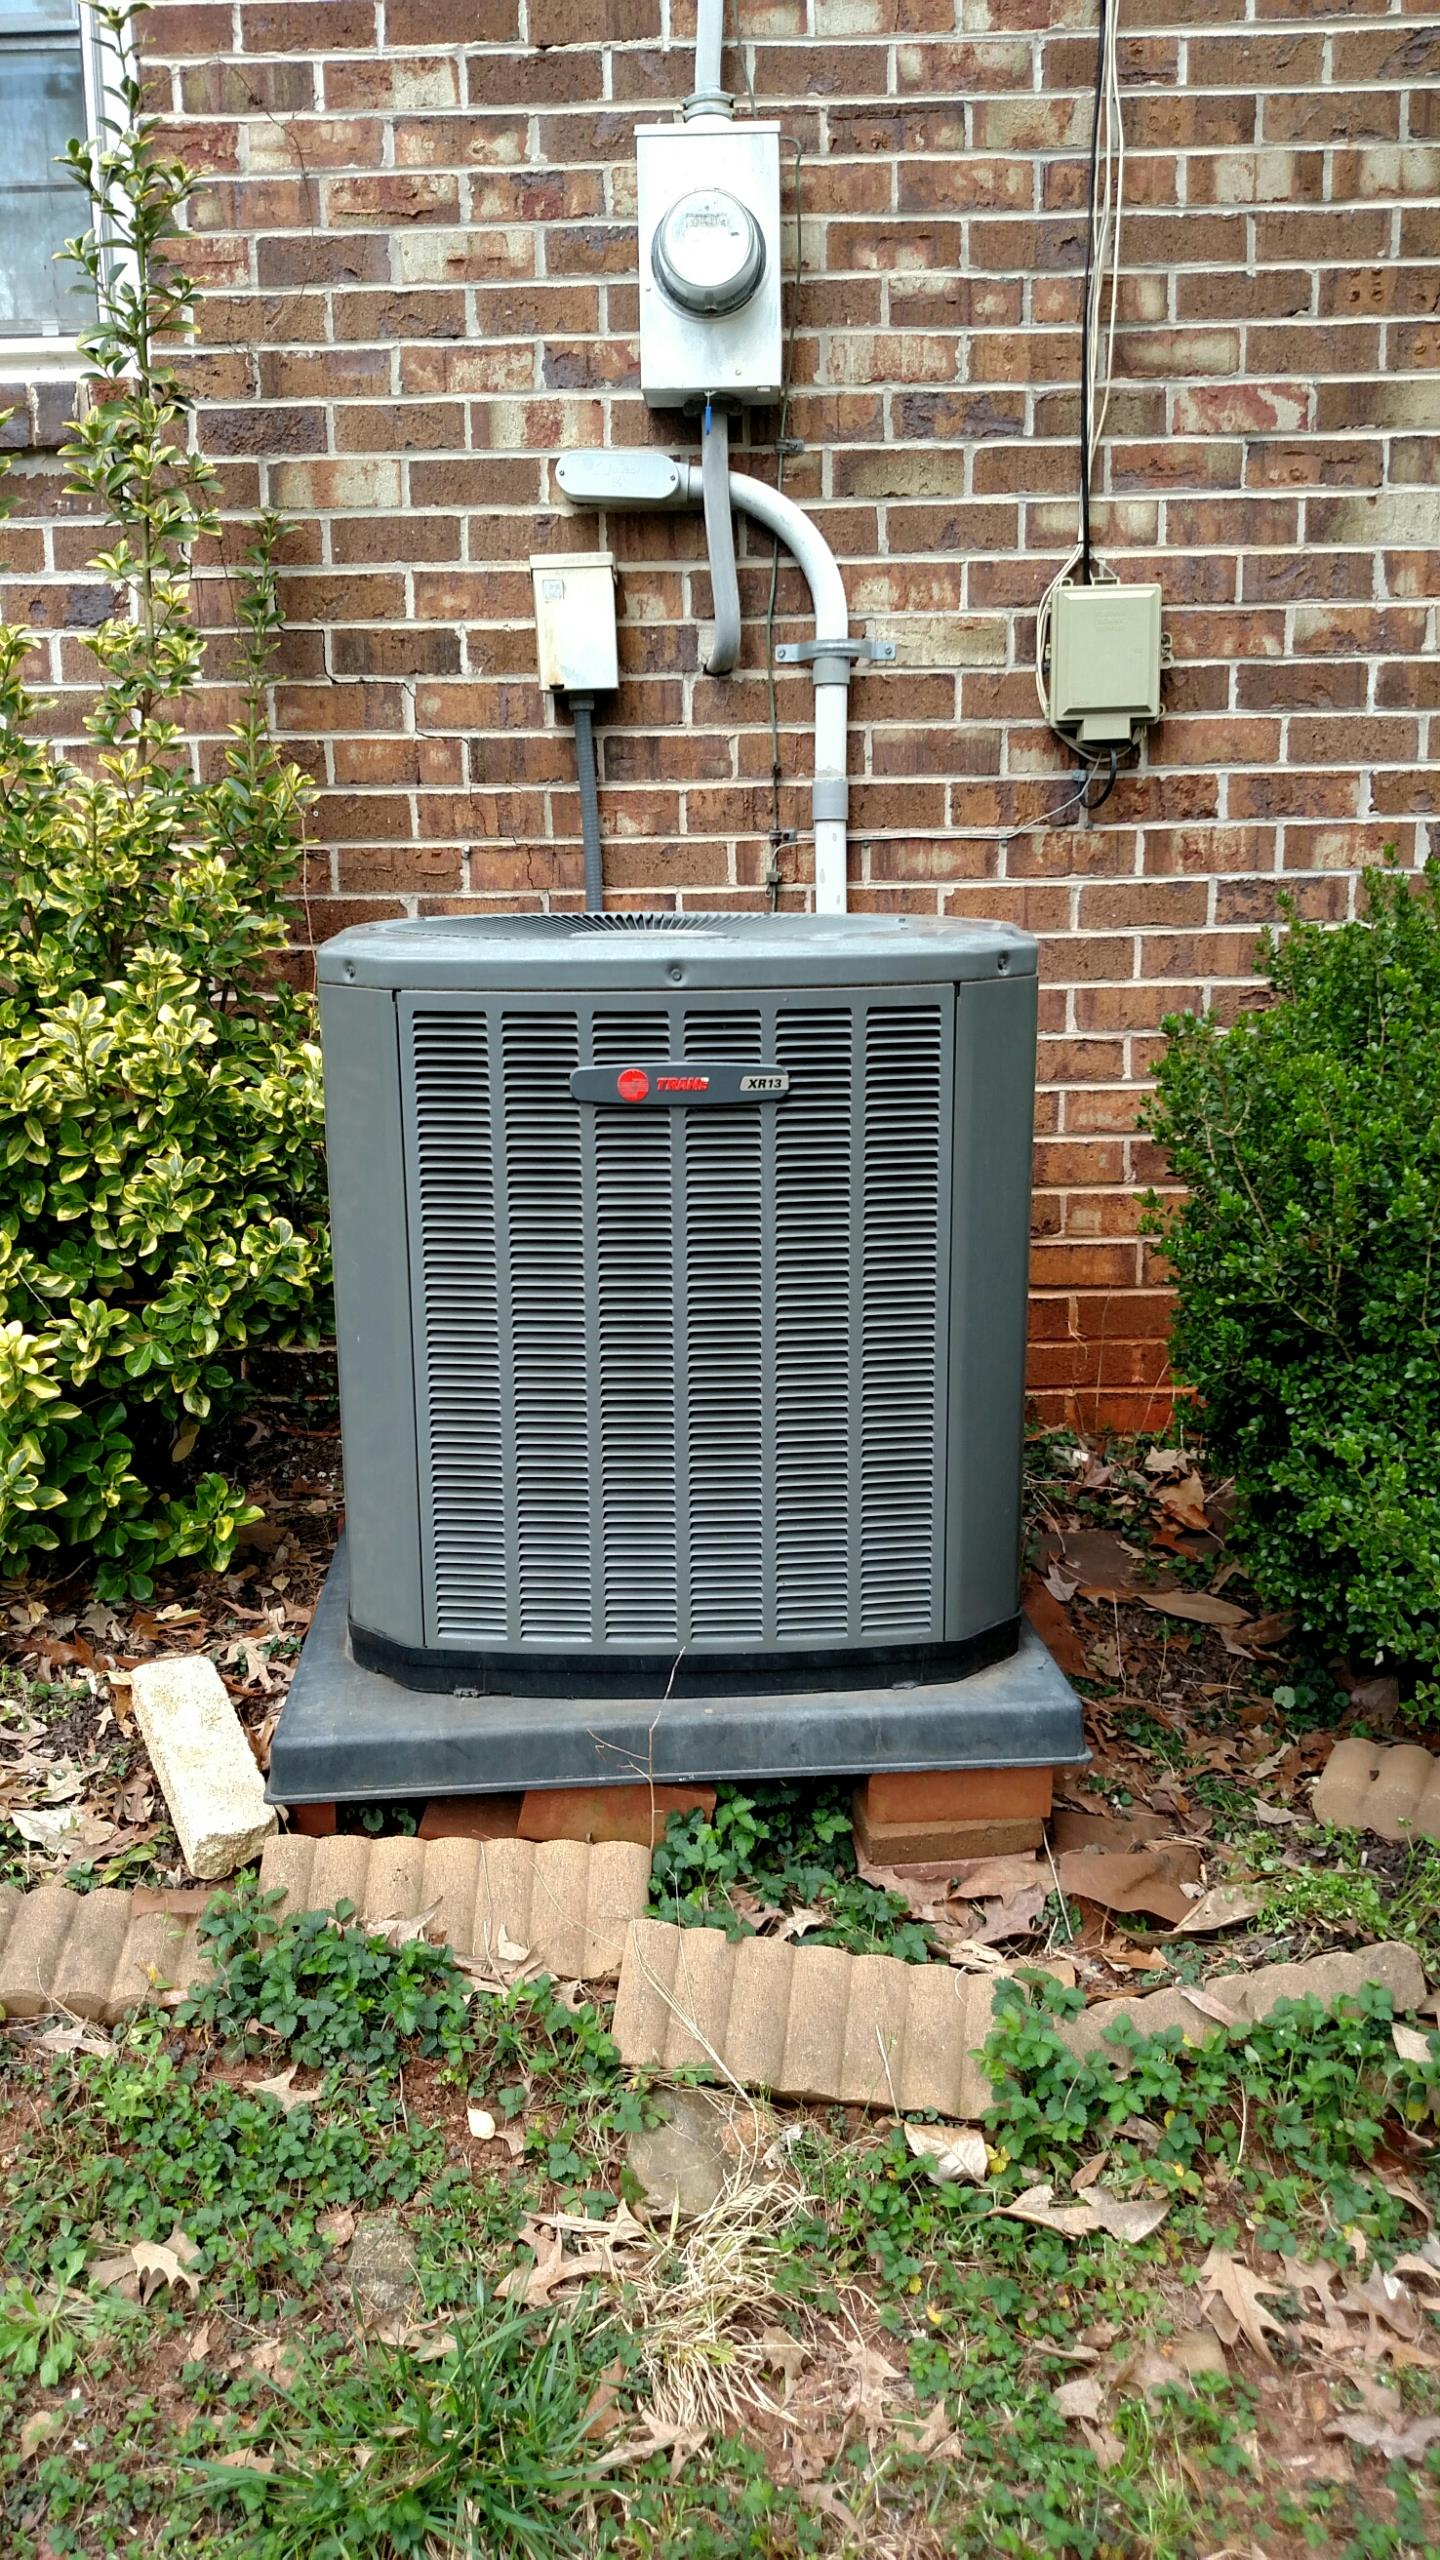 Oakwood, GA - Performing cooling maintenance on this Trane central heating and cooling system that we installed back in 2005.